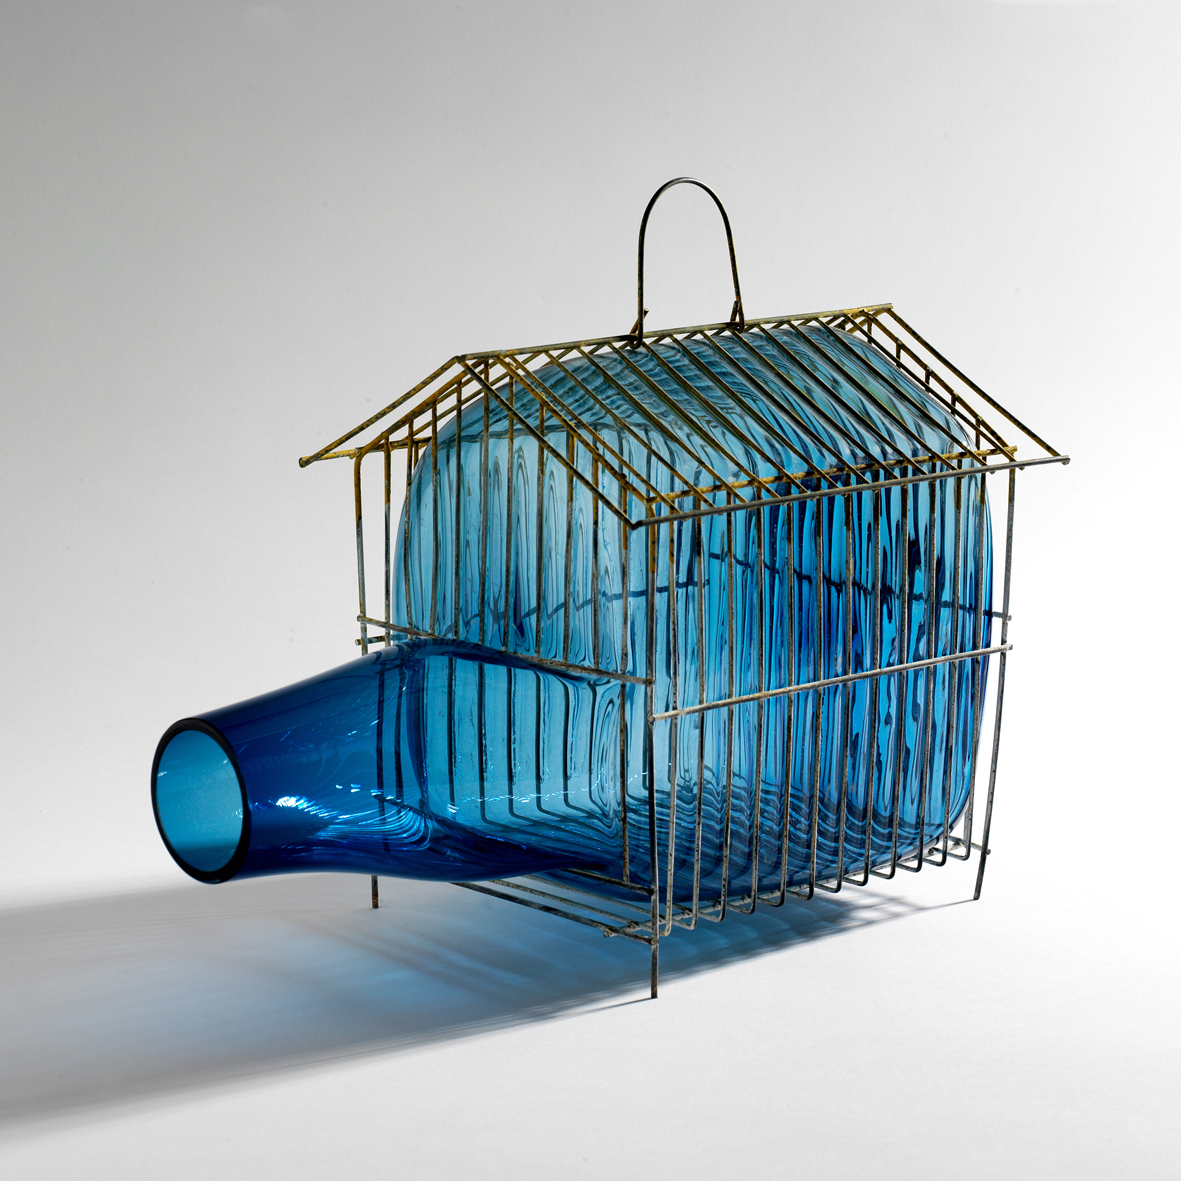 GALA FERNÁNDEZ - BLUE HOUSE CAGE